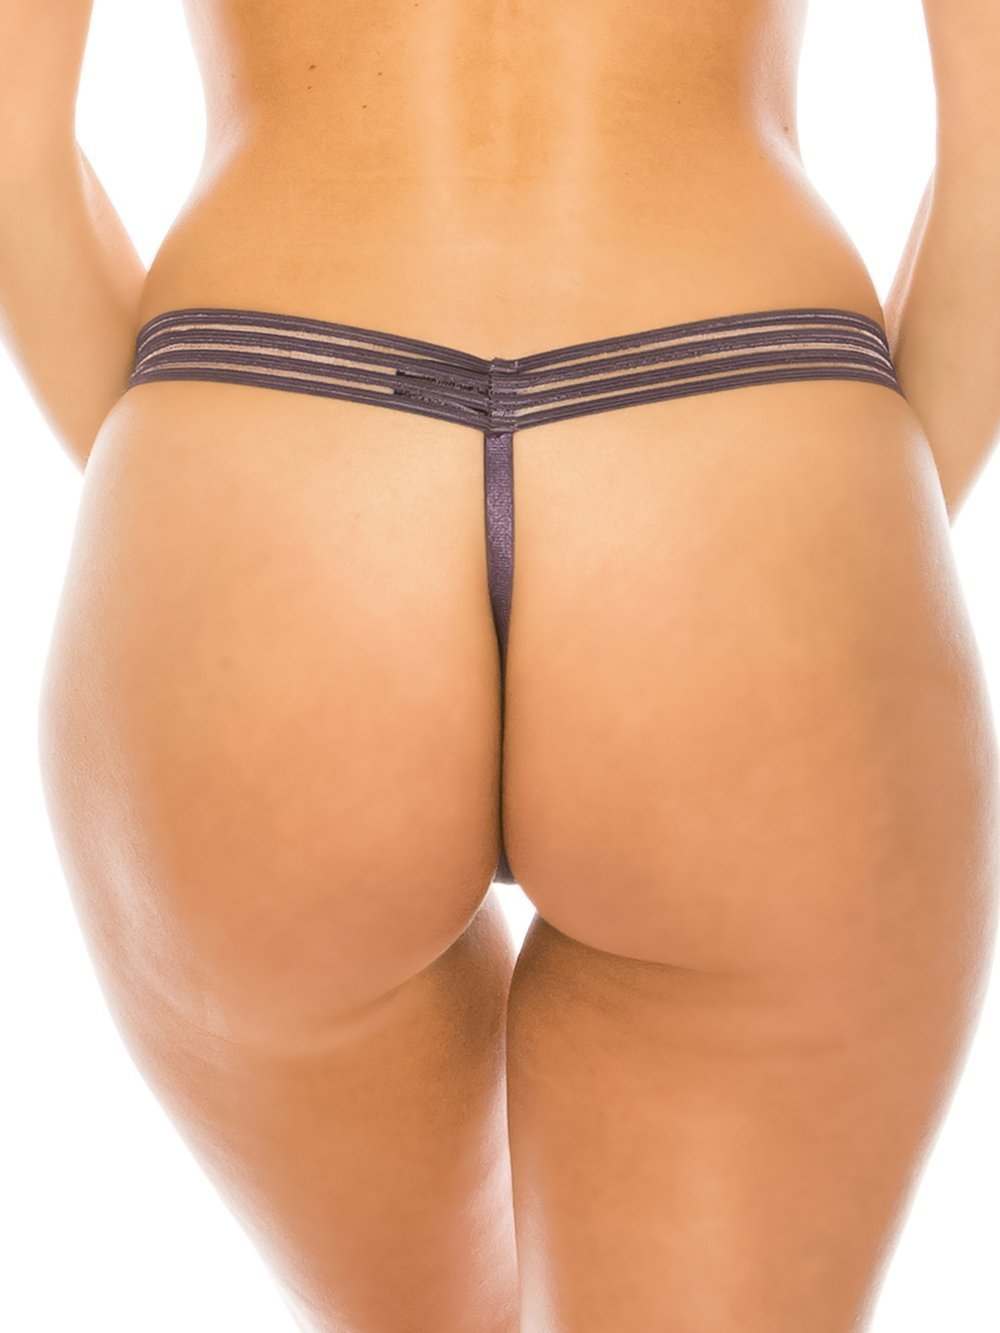 Sheer G-String Thong with Elastic Mesh Band - Youmita Lingerie